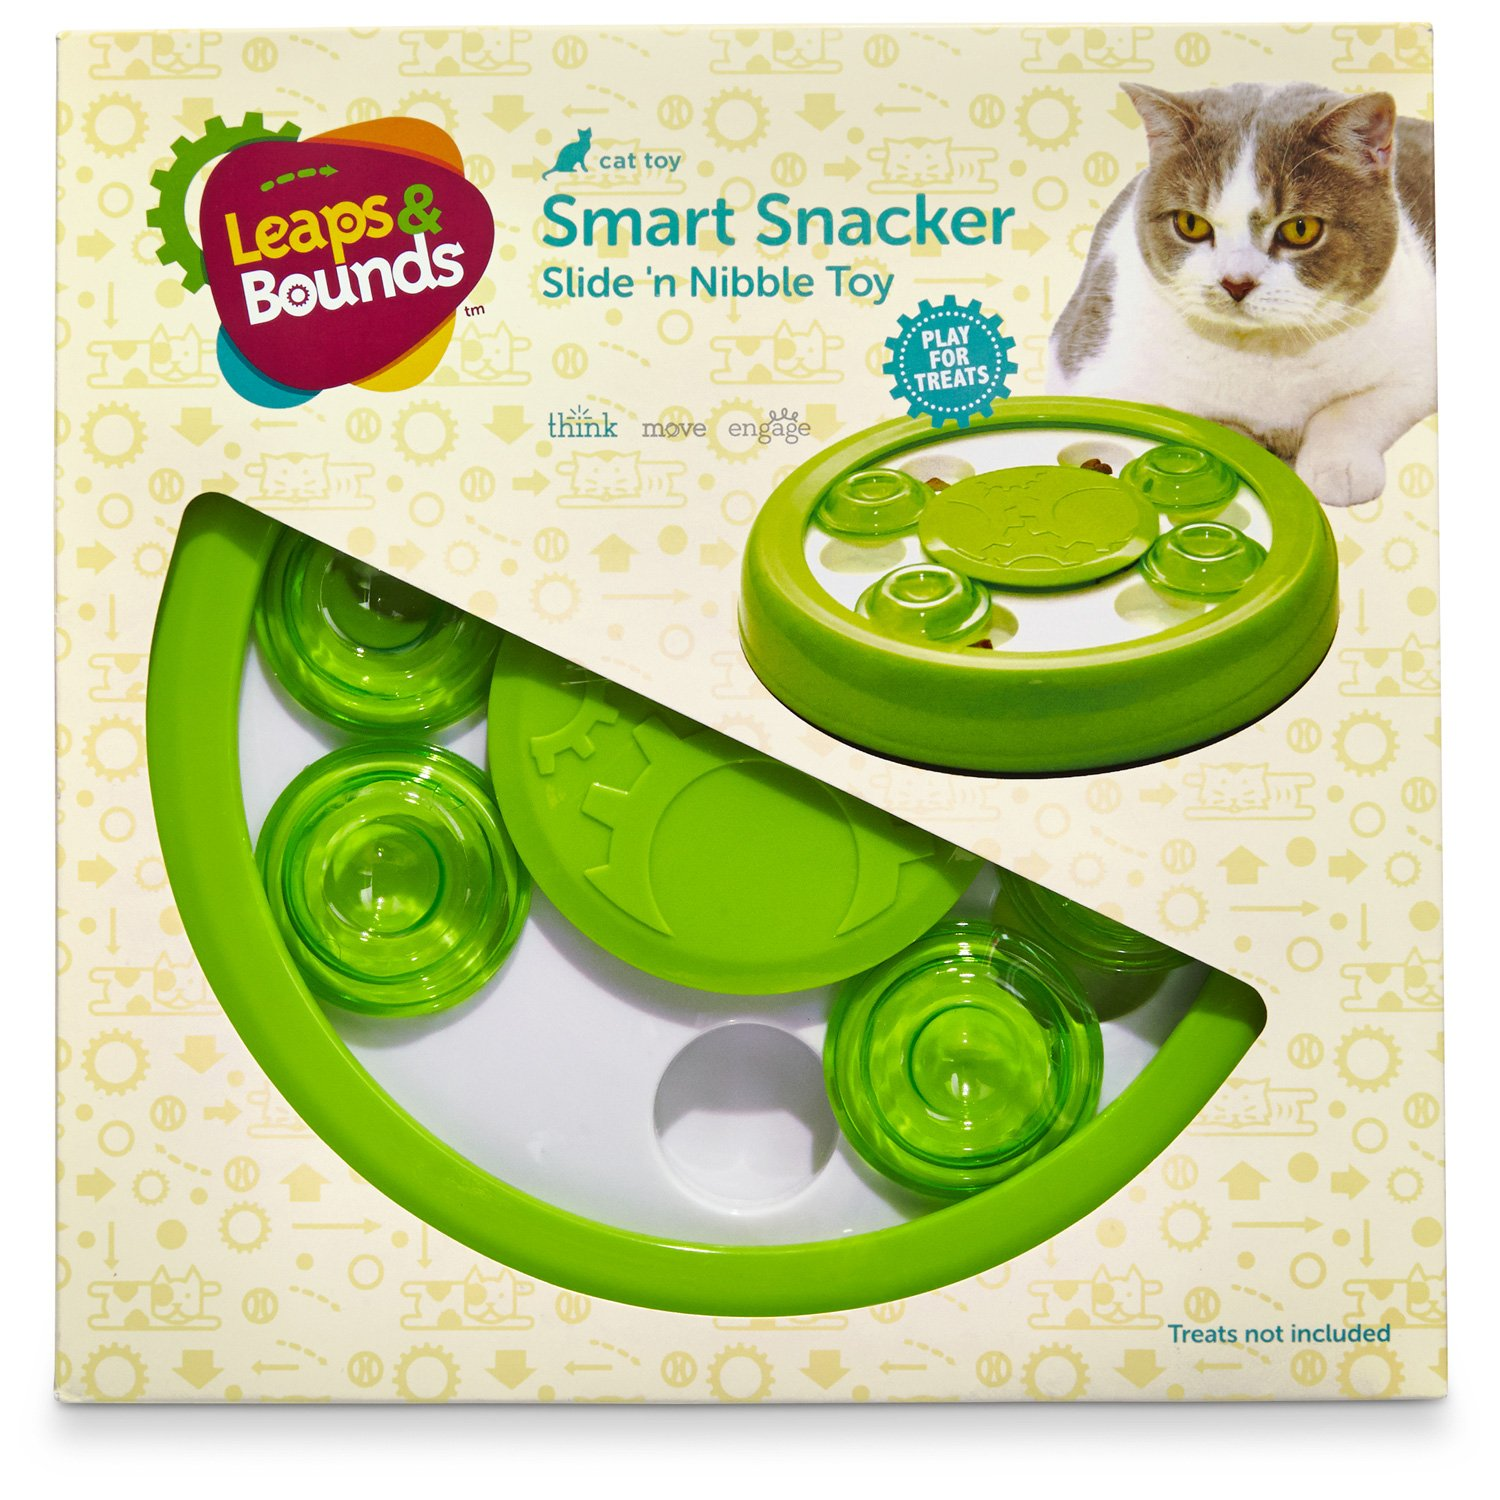 Leaps Bounds Slide N Nibble Treat Toy 9 Diameter Petco Store Cat Toys Kitten Toys Interactive Cat Toys